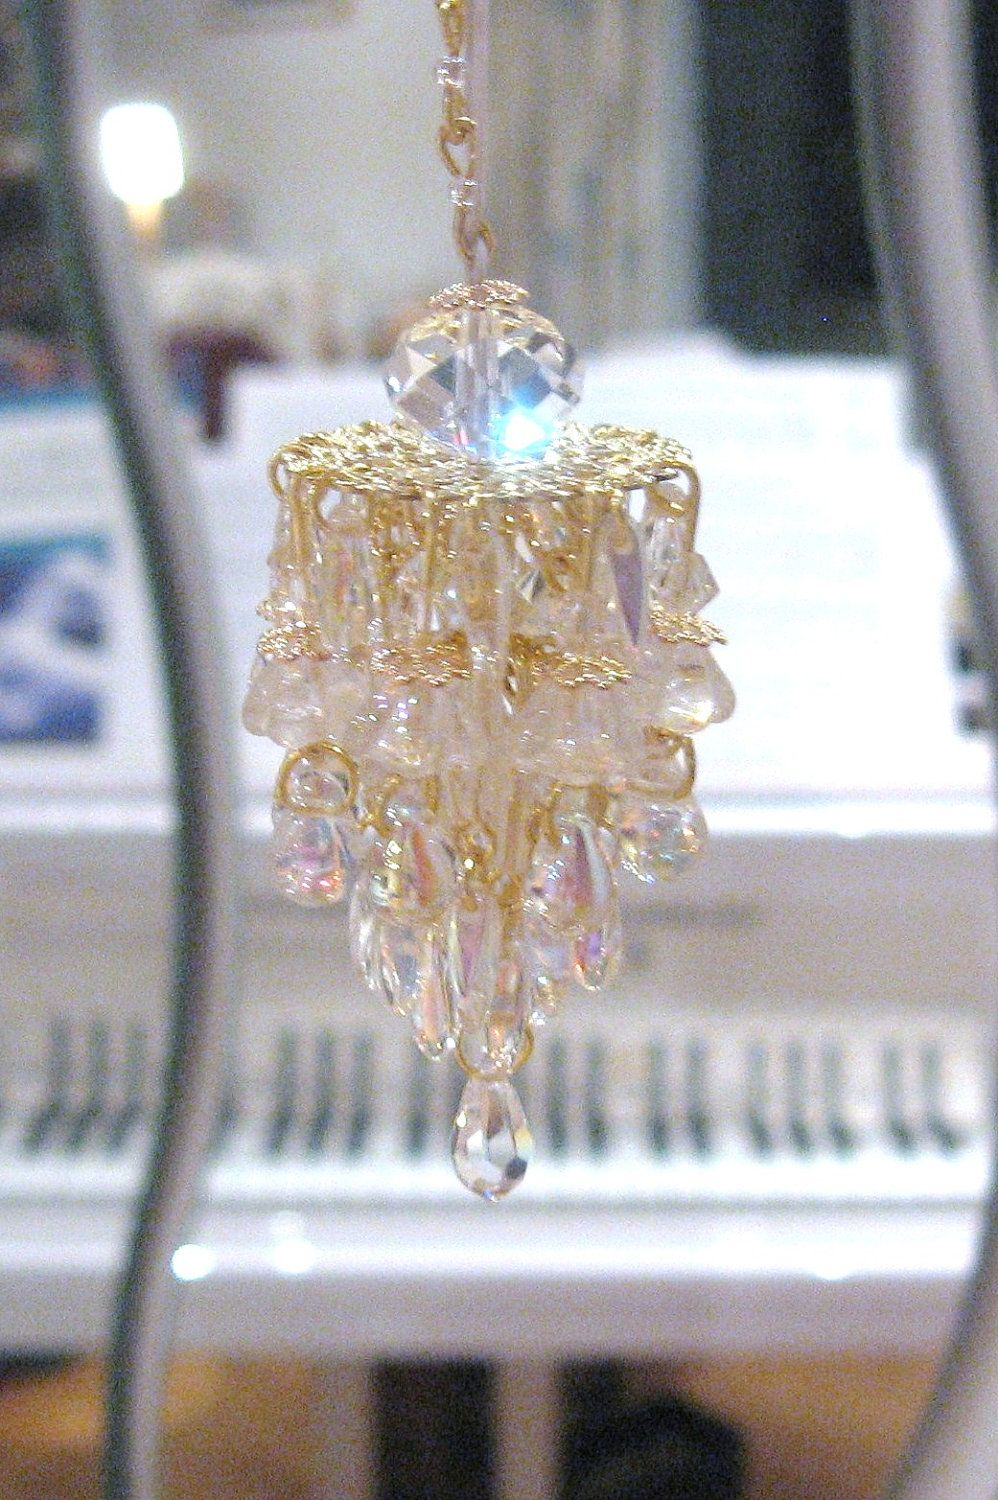 Dollhouse chandelier light glass and crystals aurora borealis dollhouse chandelier light glass and crystals aurora borealis 2000 via etsy arubaitofo Image collections